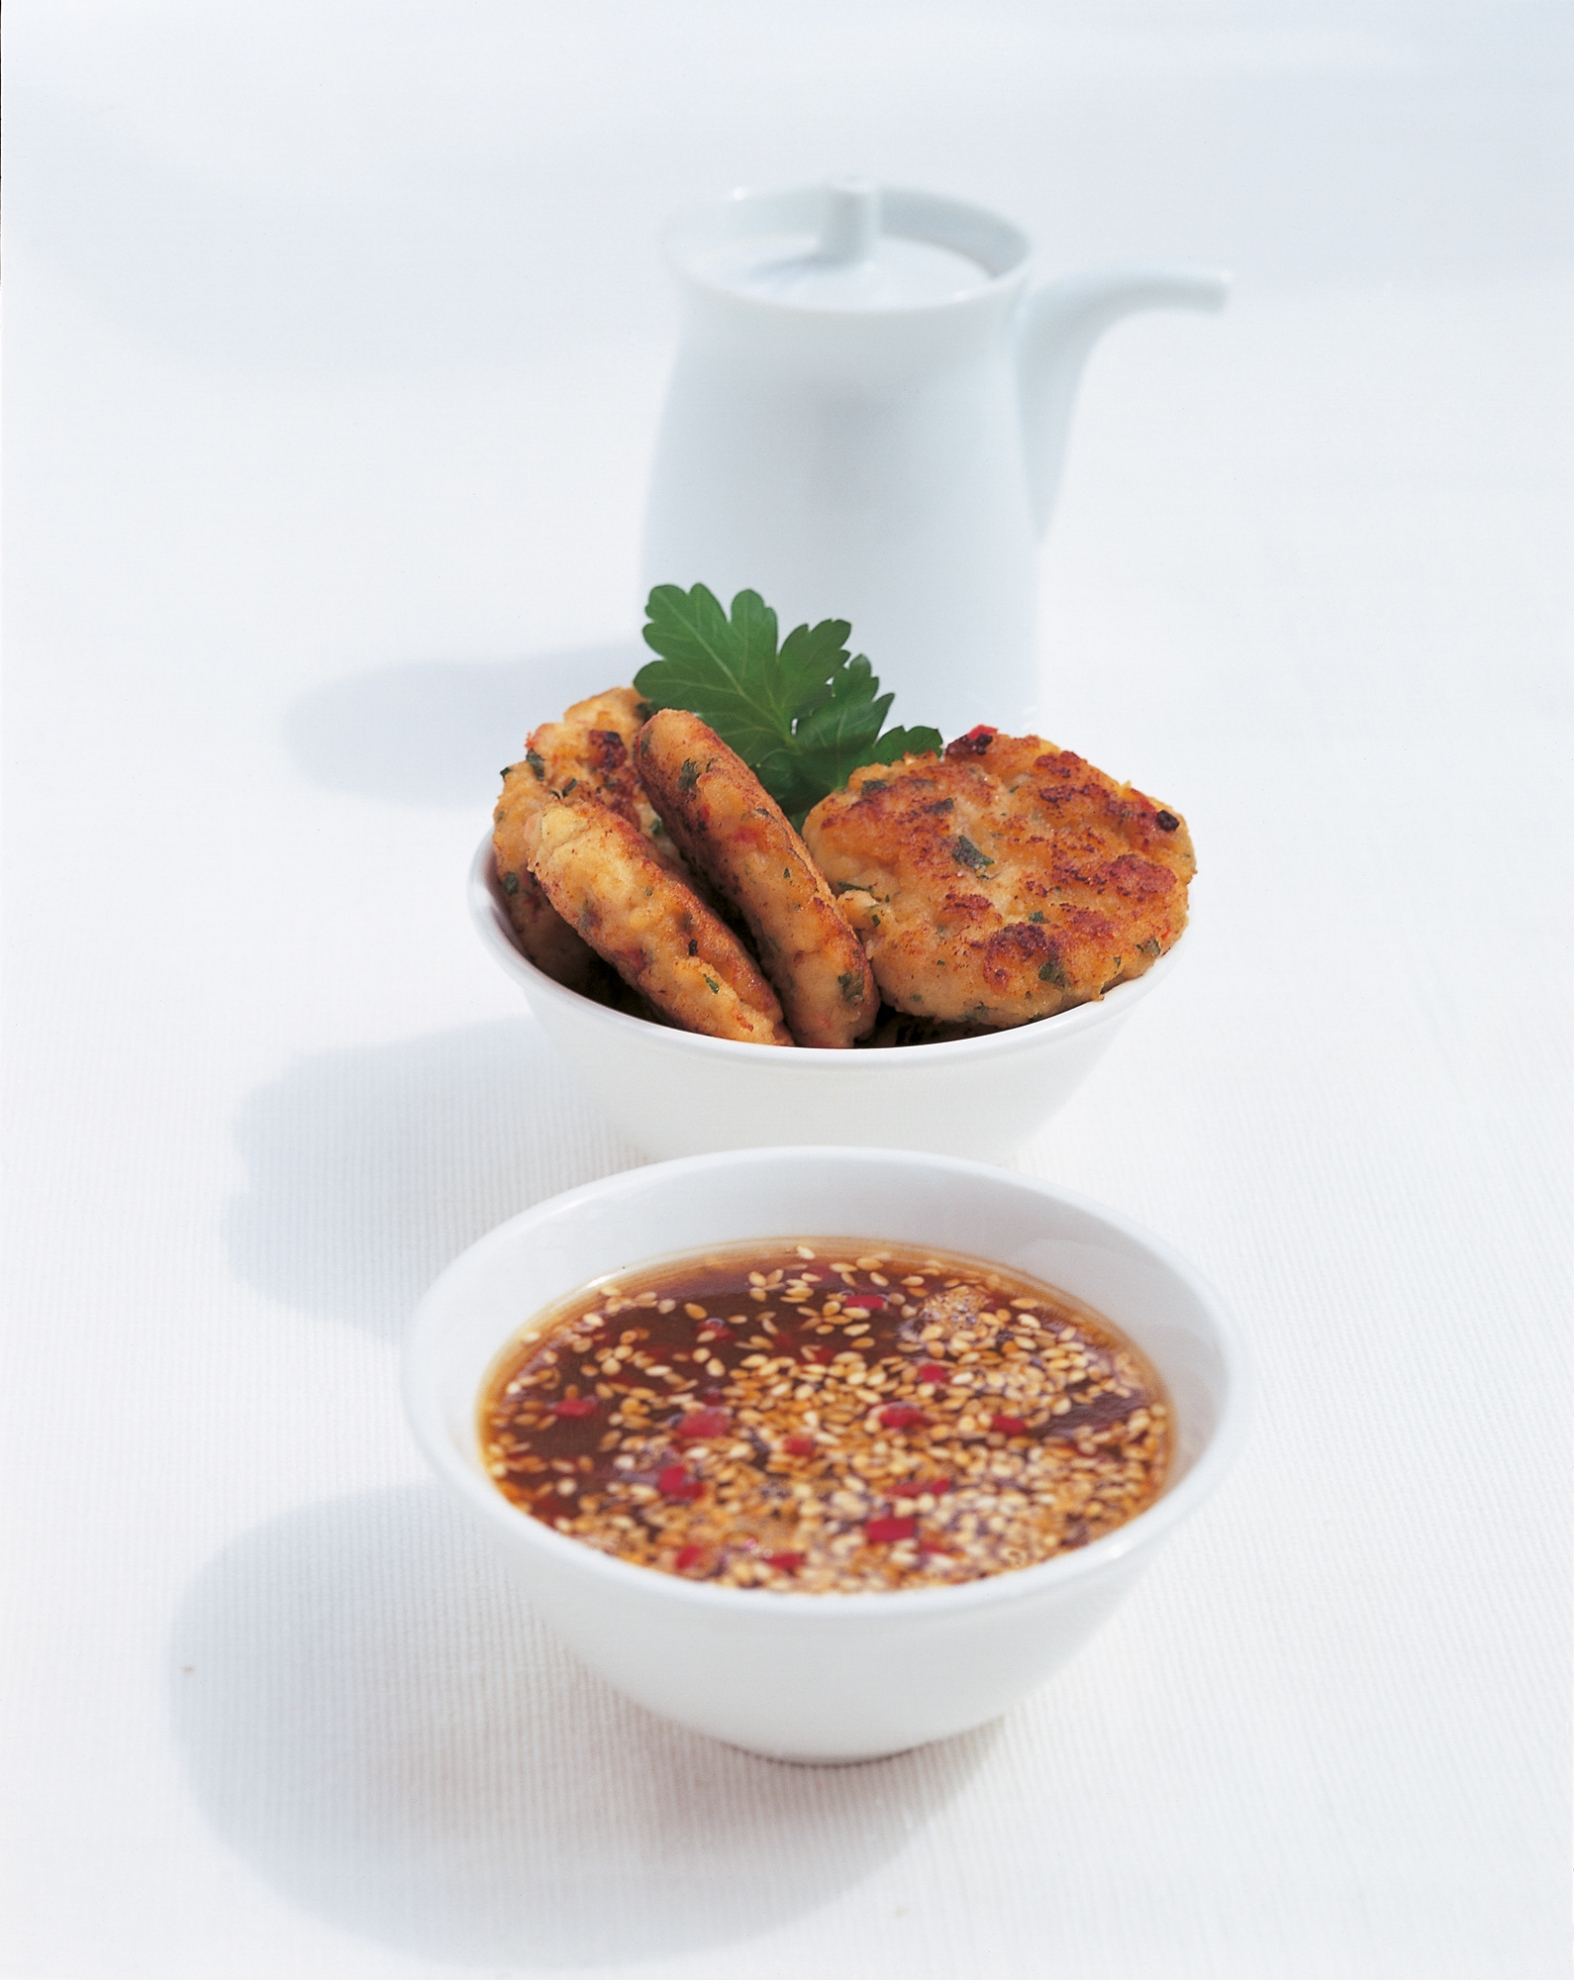 Thai Fish Cakes with Sesame and Lime Dipping Sauce